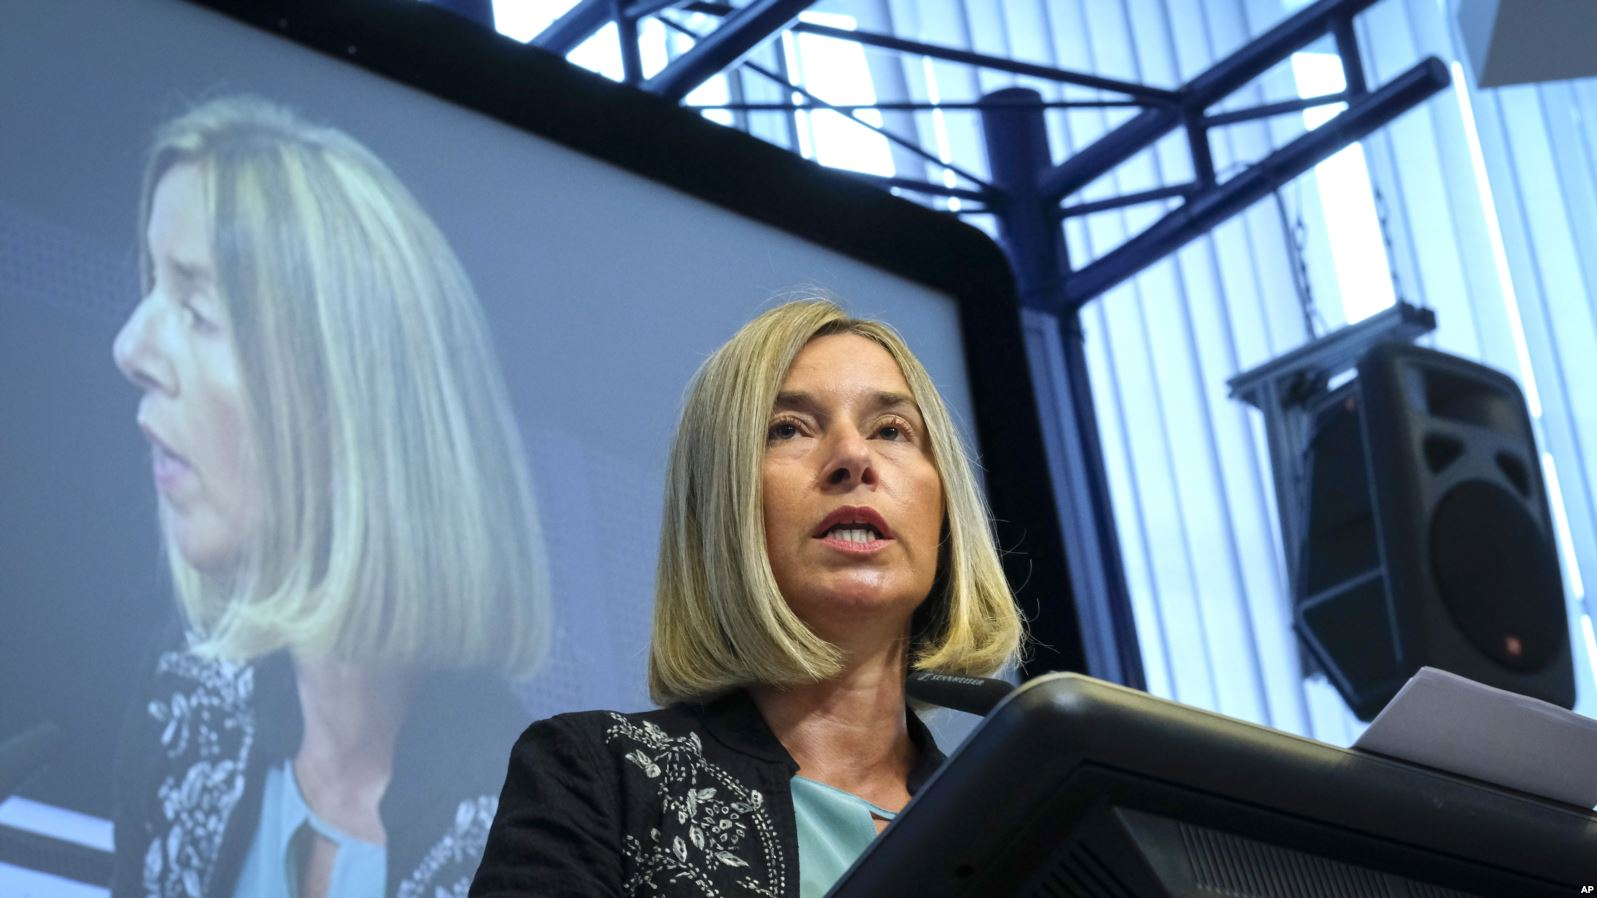 Mogherini is confident about the possibility of a deal between Kosovo and Serbia